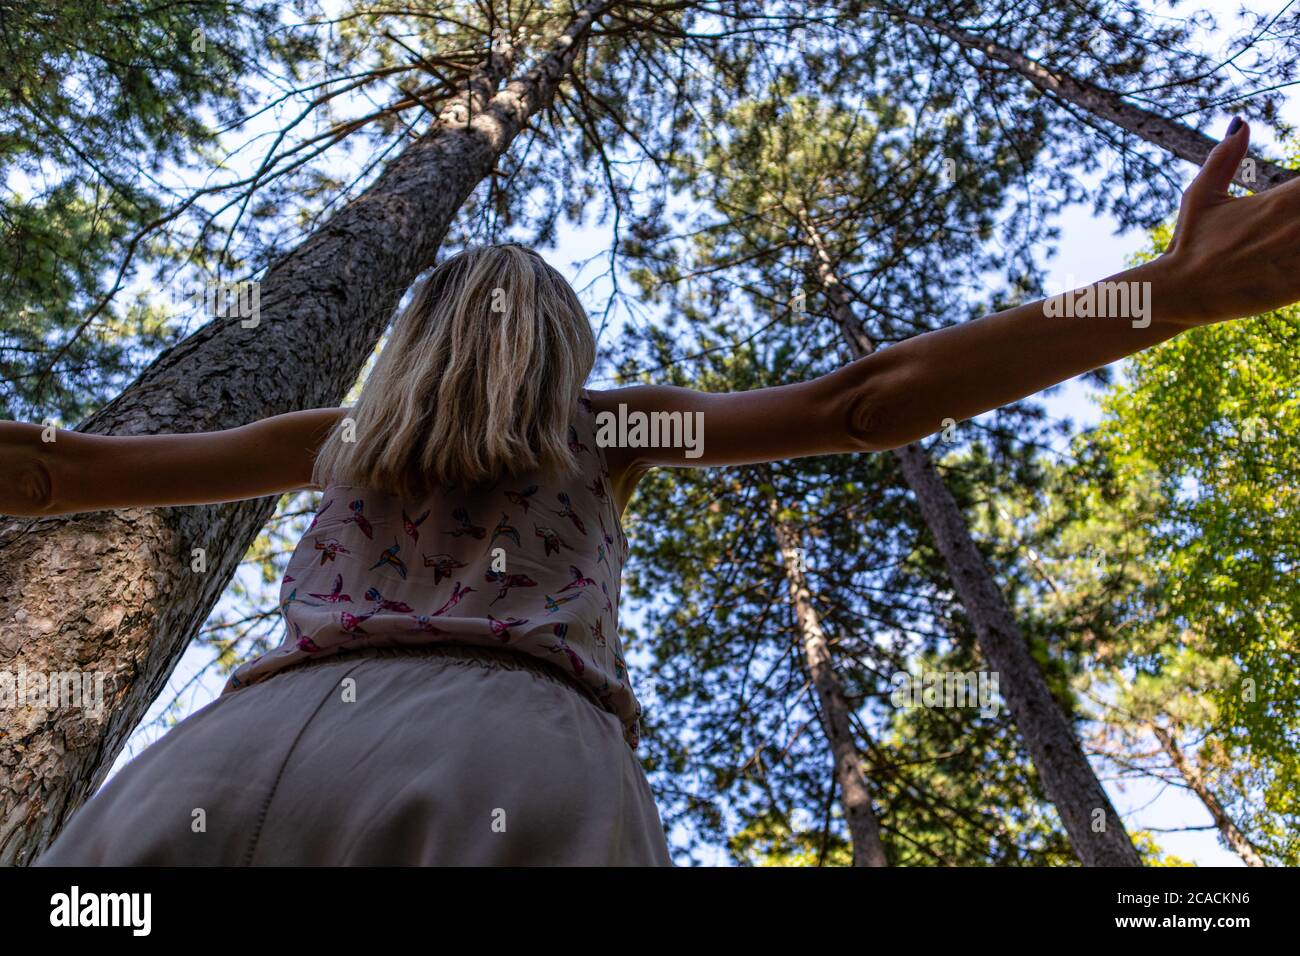 Woman arms raised enjoying the fresh air in green pine tree forest on a summer day. Relaxation in nature and freedom concept Stock Photo